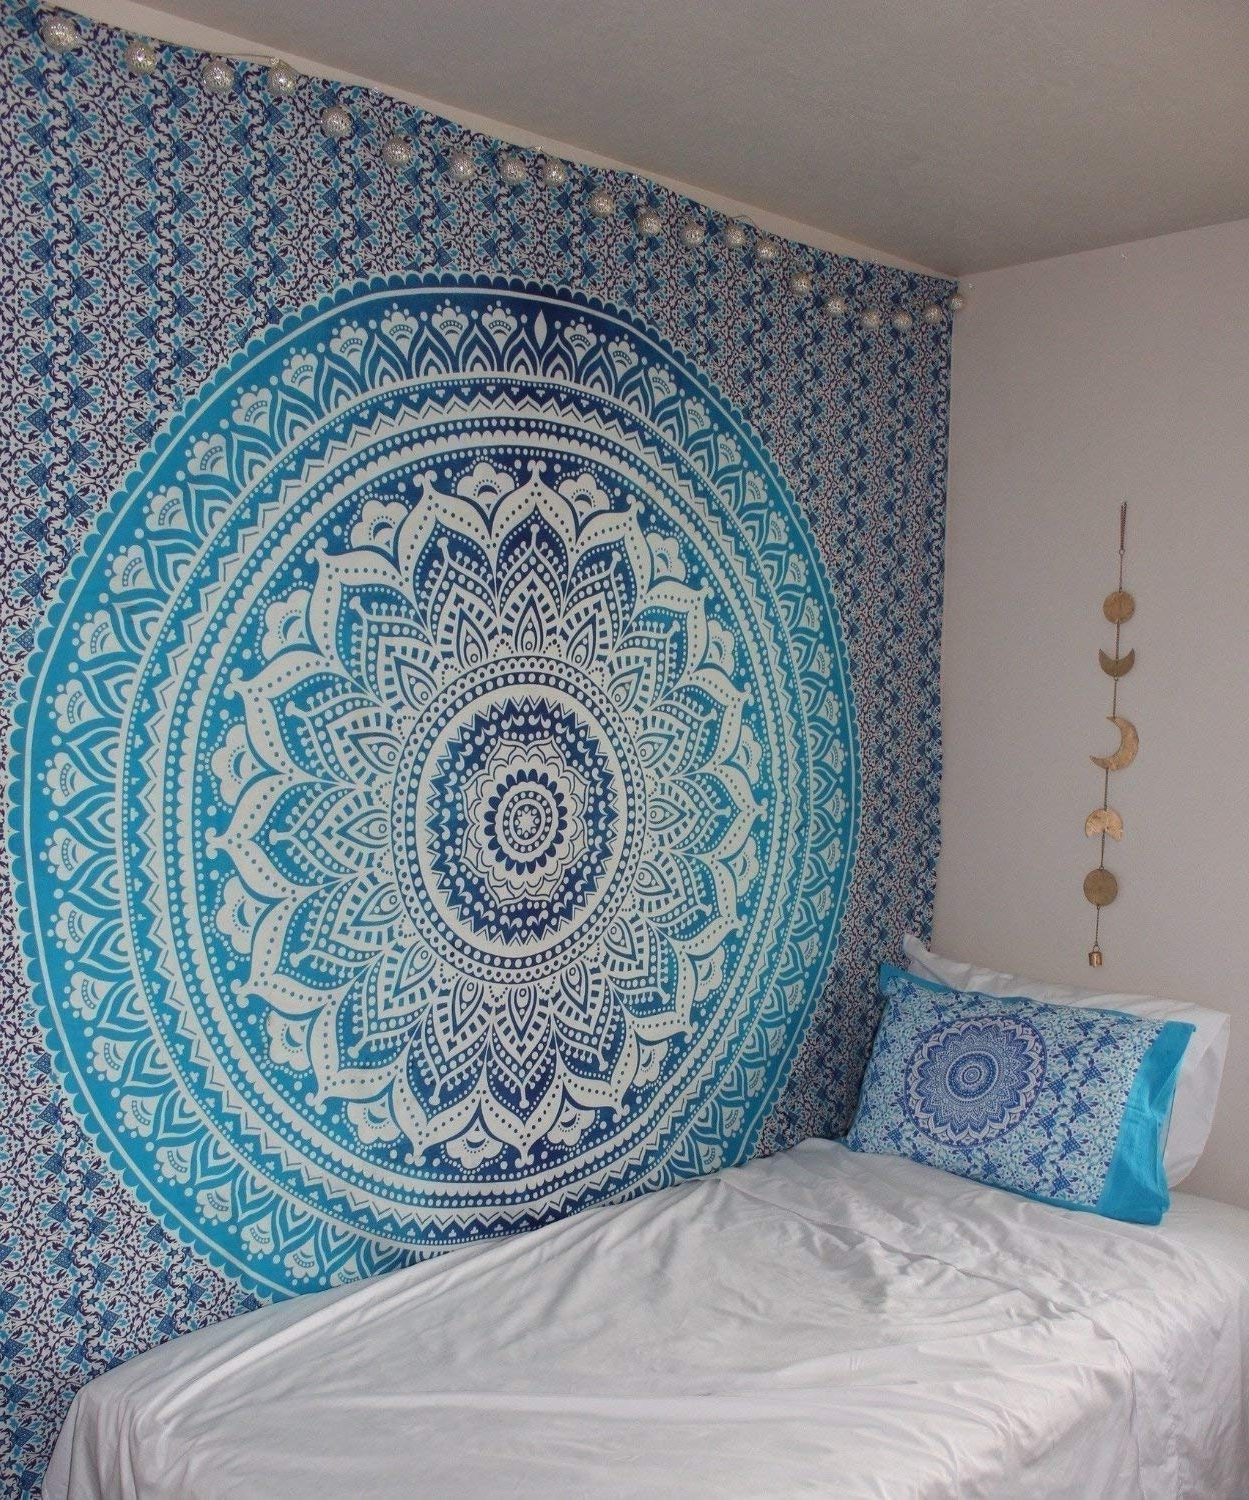 Amazon: Hippie Mandala Tapestry, Hippie Tapestries, Mandala Wall In Most Recent Mandala Wall Art (View 1 of 20)